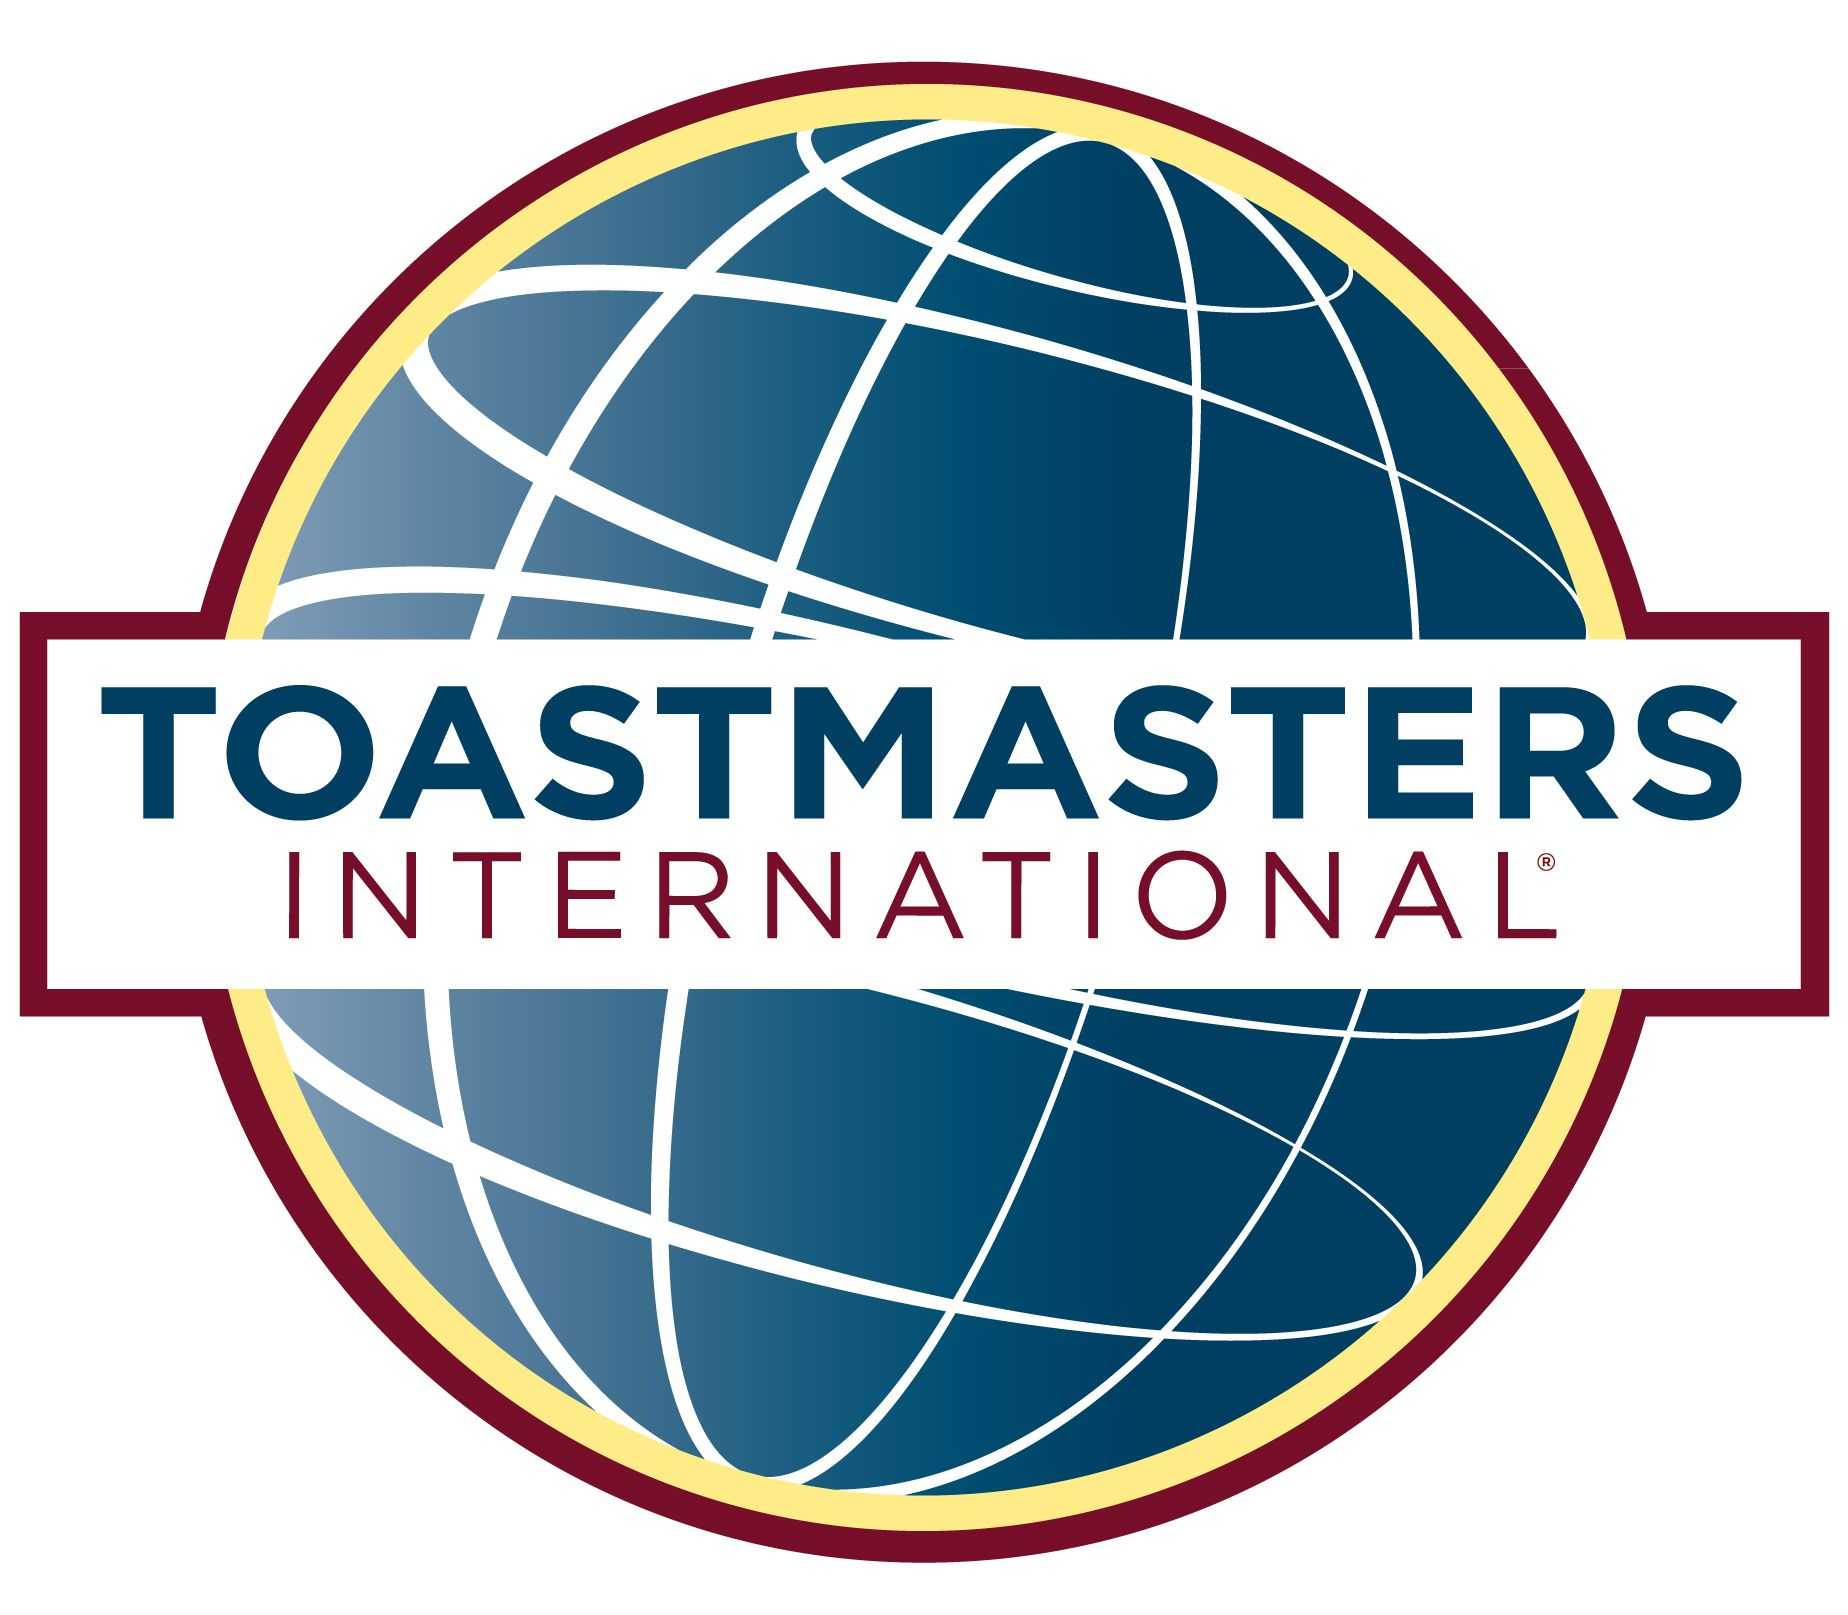 toasmasters report We are butter n toast toastmasters club # 794965 one of the most exciting toastmasters clubs in makati and the philippines today this blog serves as a.